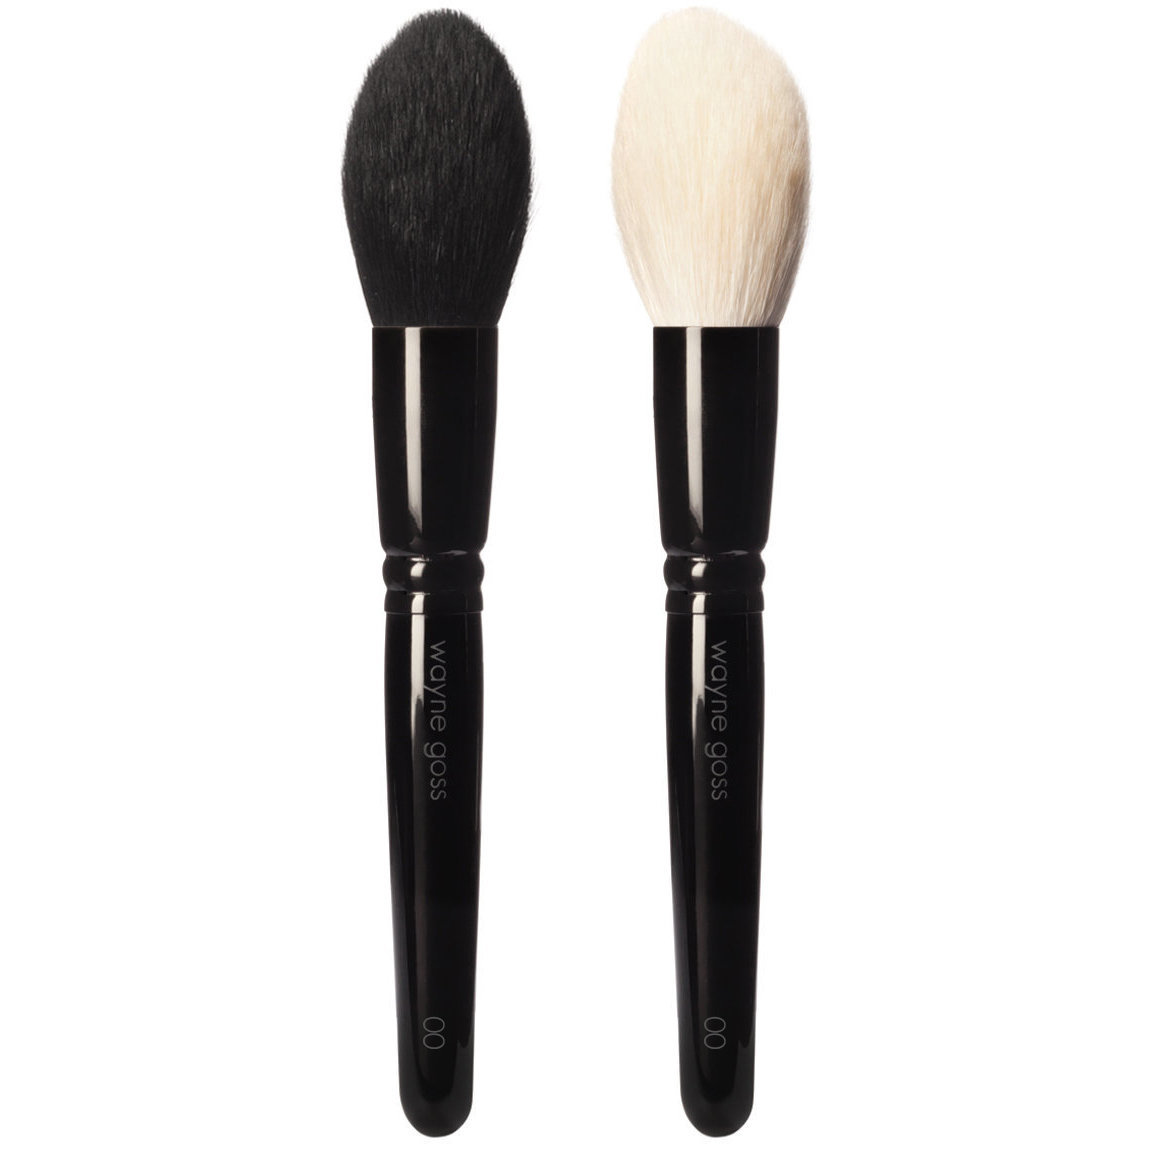 Wayne Goss Brush 00 Powder Brush Duo product smear.